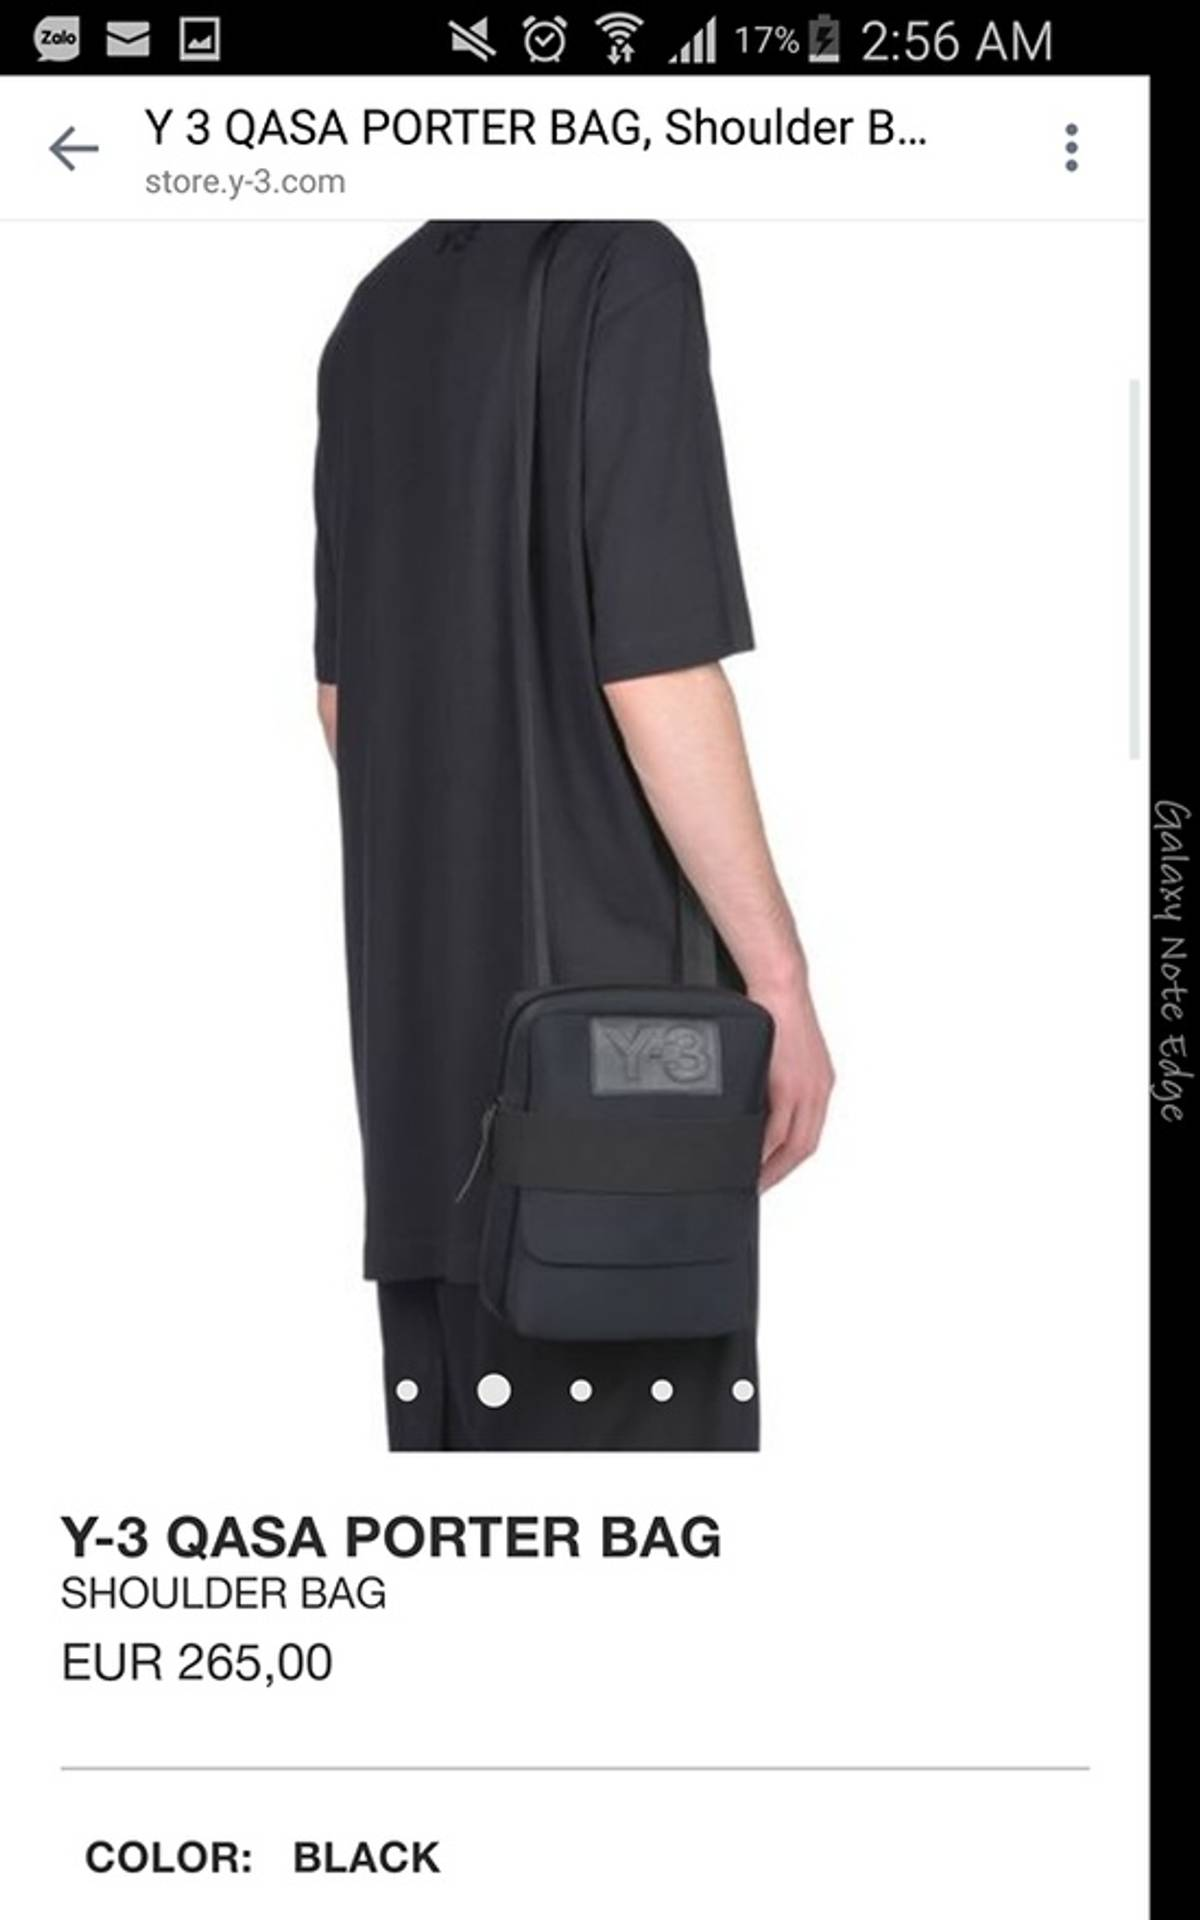 71929b921ed5 Y-3 BRAND NEW Y-3 QASA YOHJI YAMAMOTO Y3 PORTER SHOULDER BAG RETAIL 265€  SPRING SUMMER 2017 Size one size - Bags   Luggage for Sale - Grailed